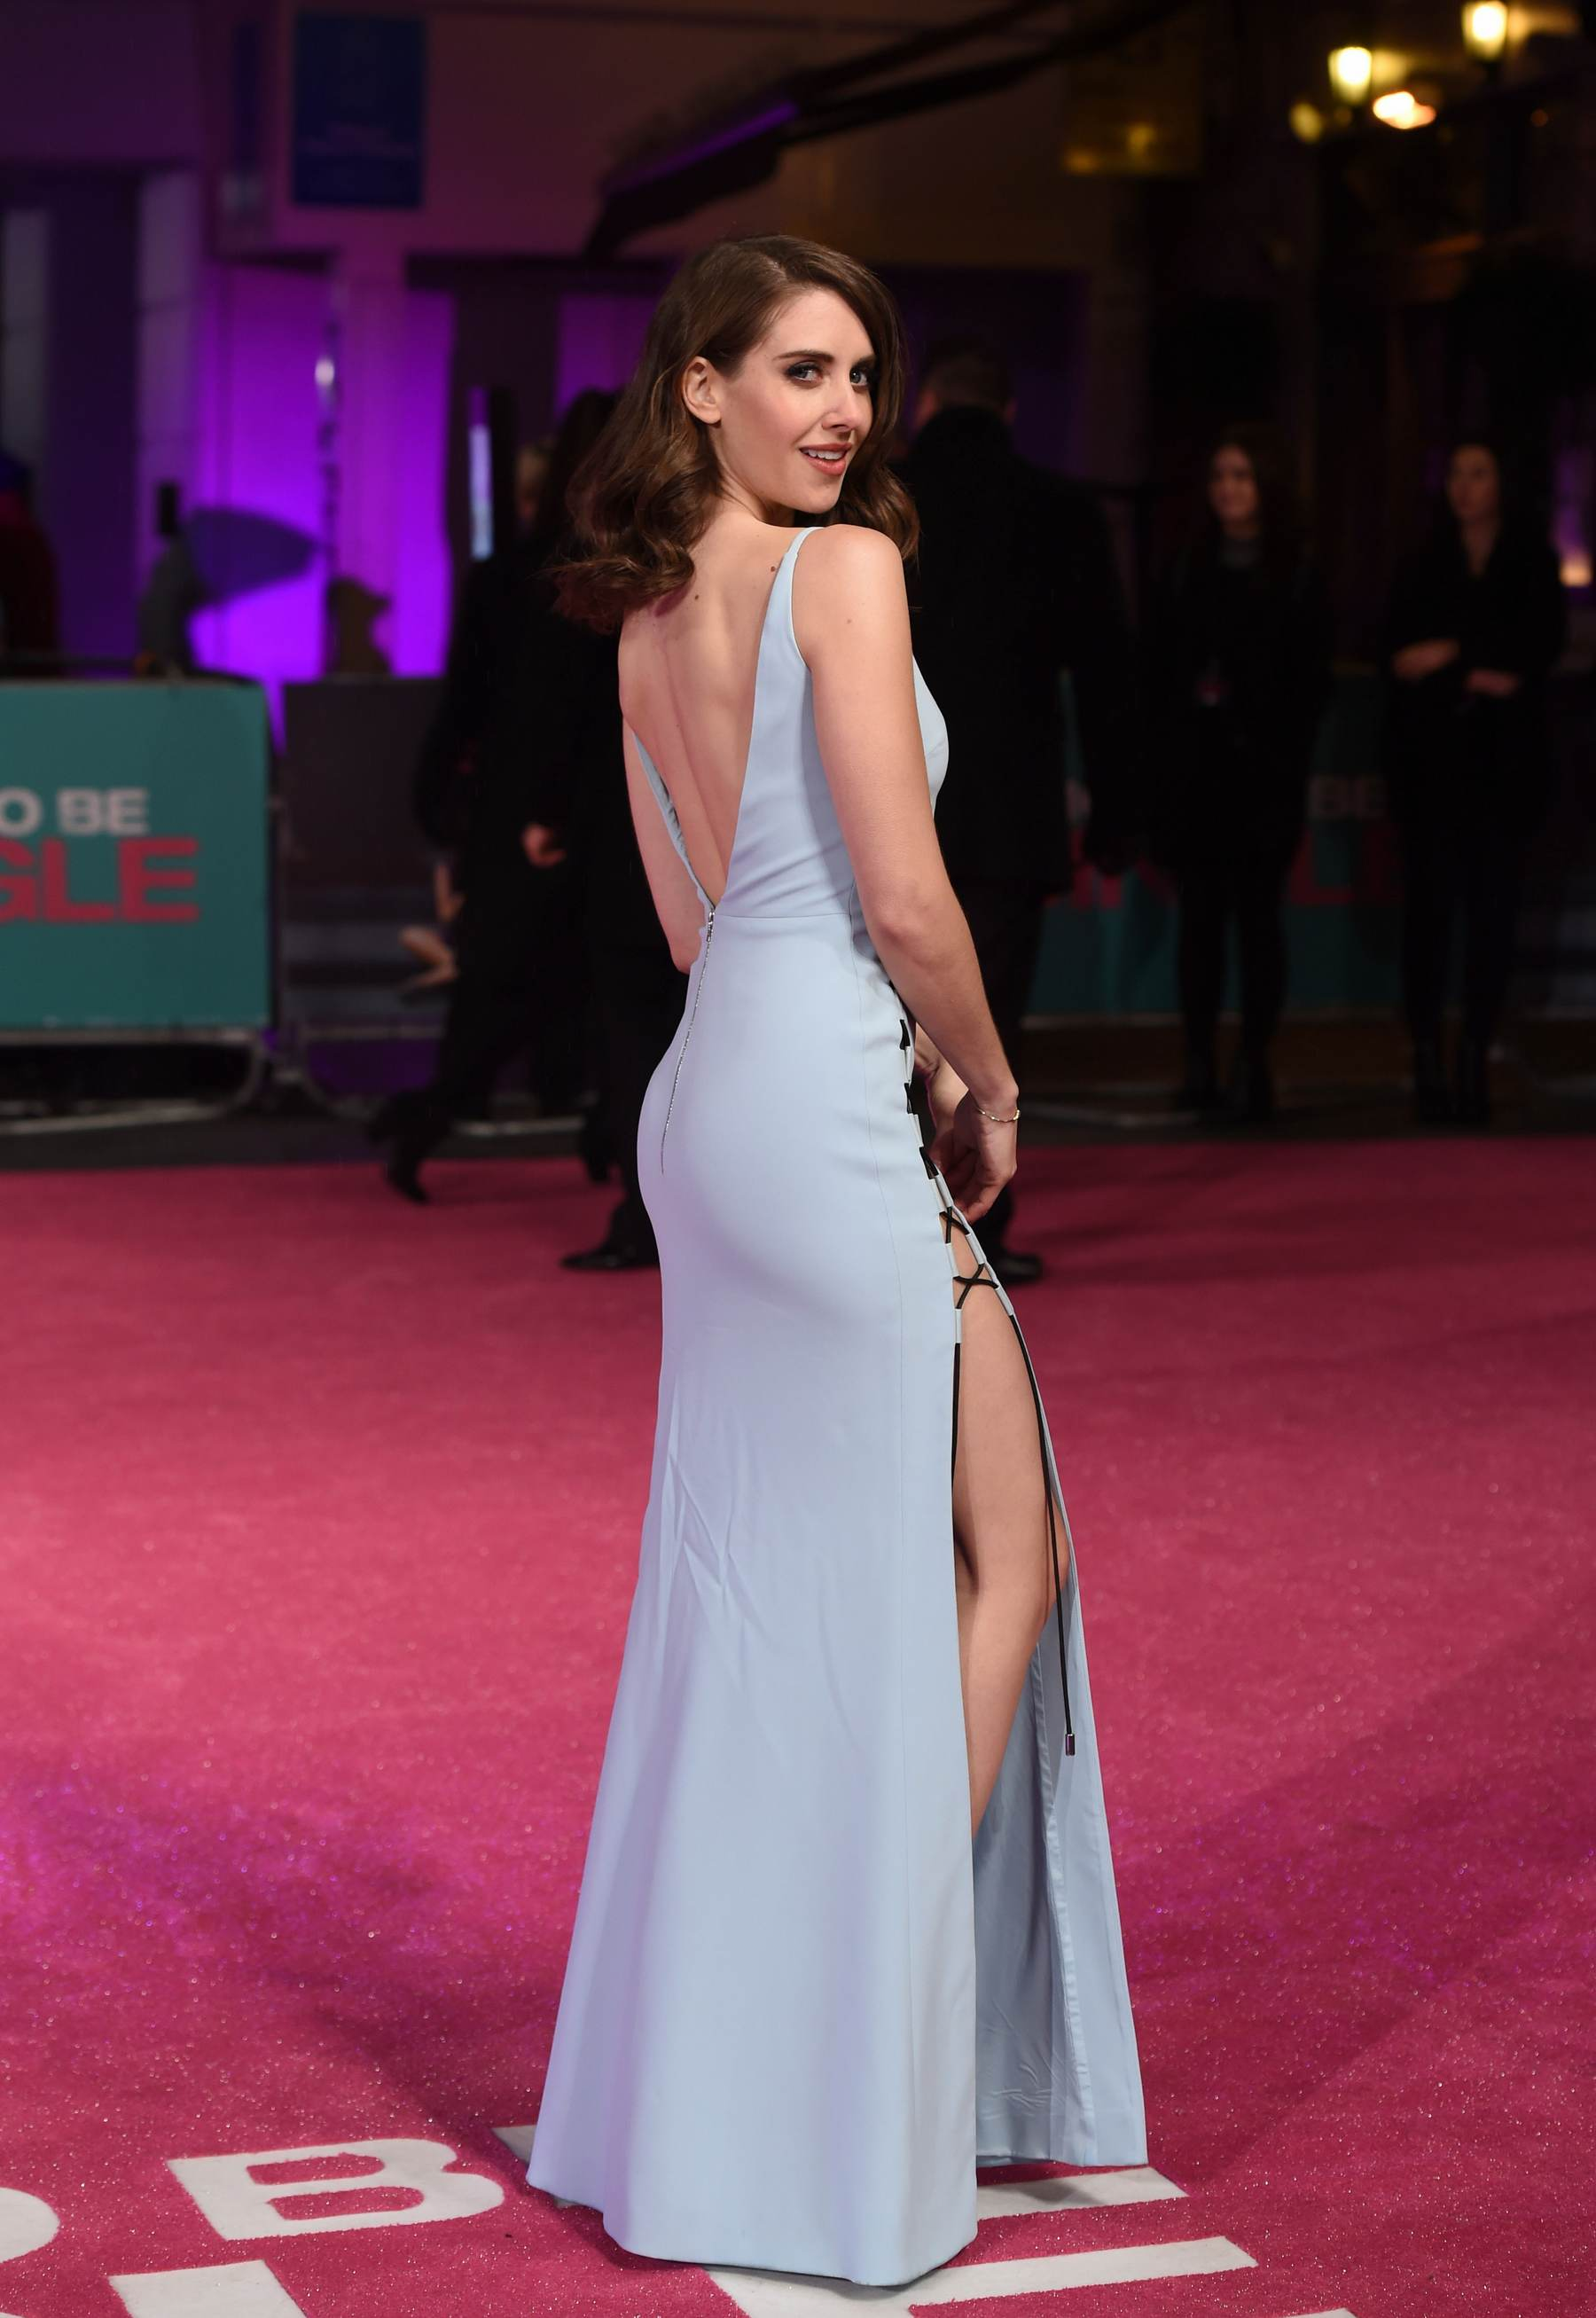 Alison Brie ate How To Be Single Premiere in London-1